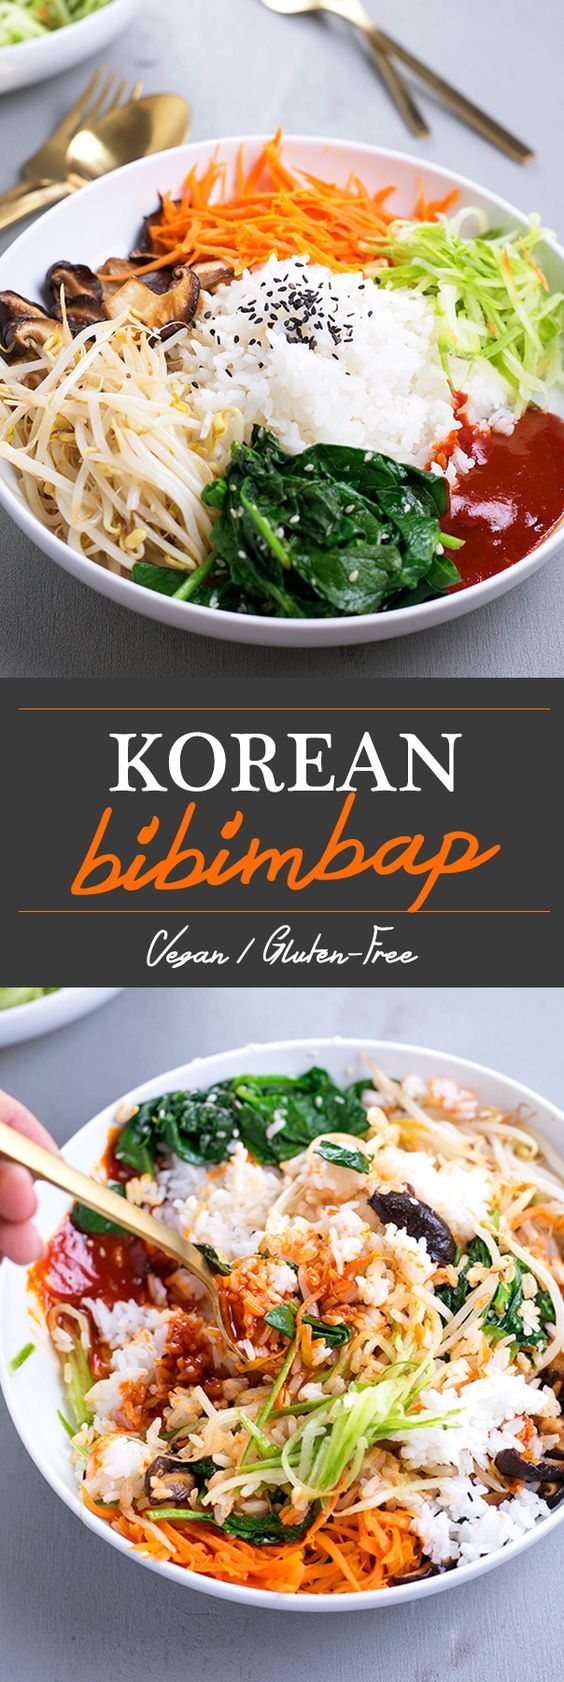 Vegan Korean Bibimbap: a classic Korean dish of rice and seasonal sautéed vegetables, served with a spicy Gochujang chilli sauce.